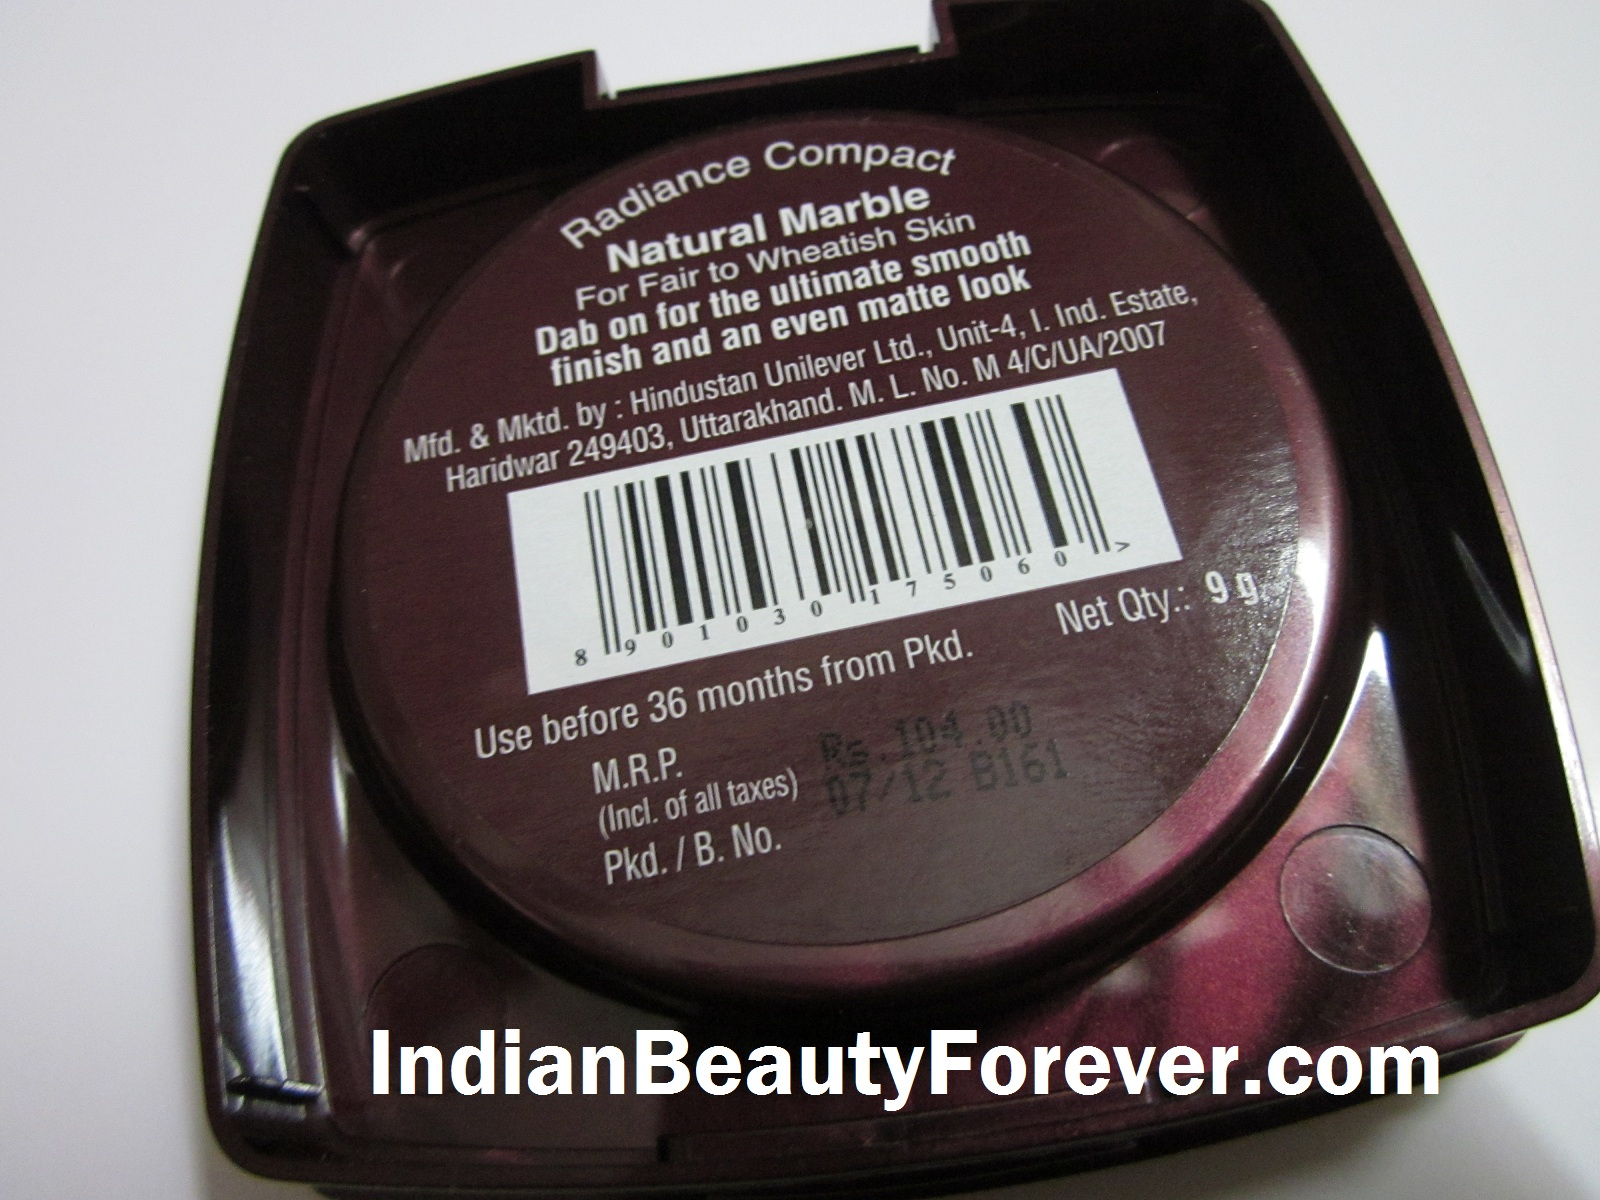 Lakme Radiance Compact Review in Natural marble price